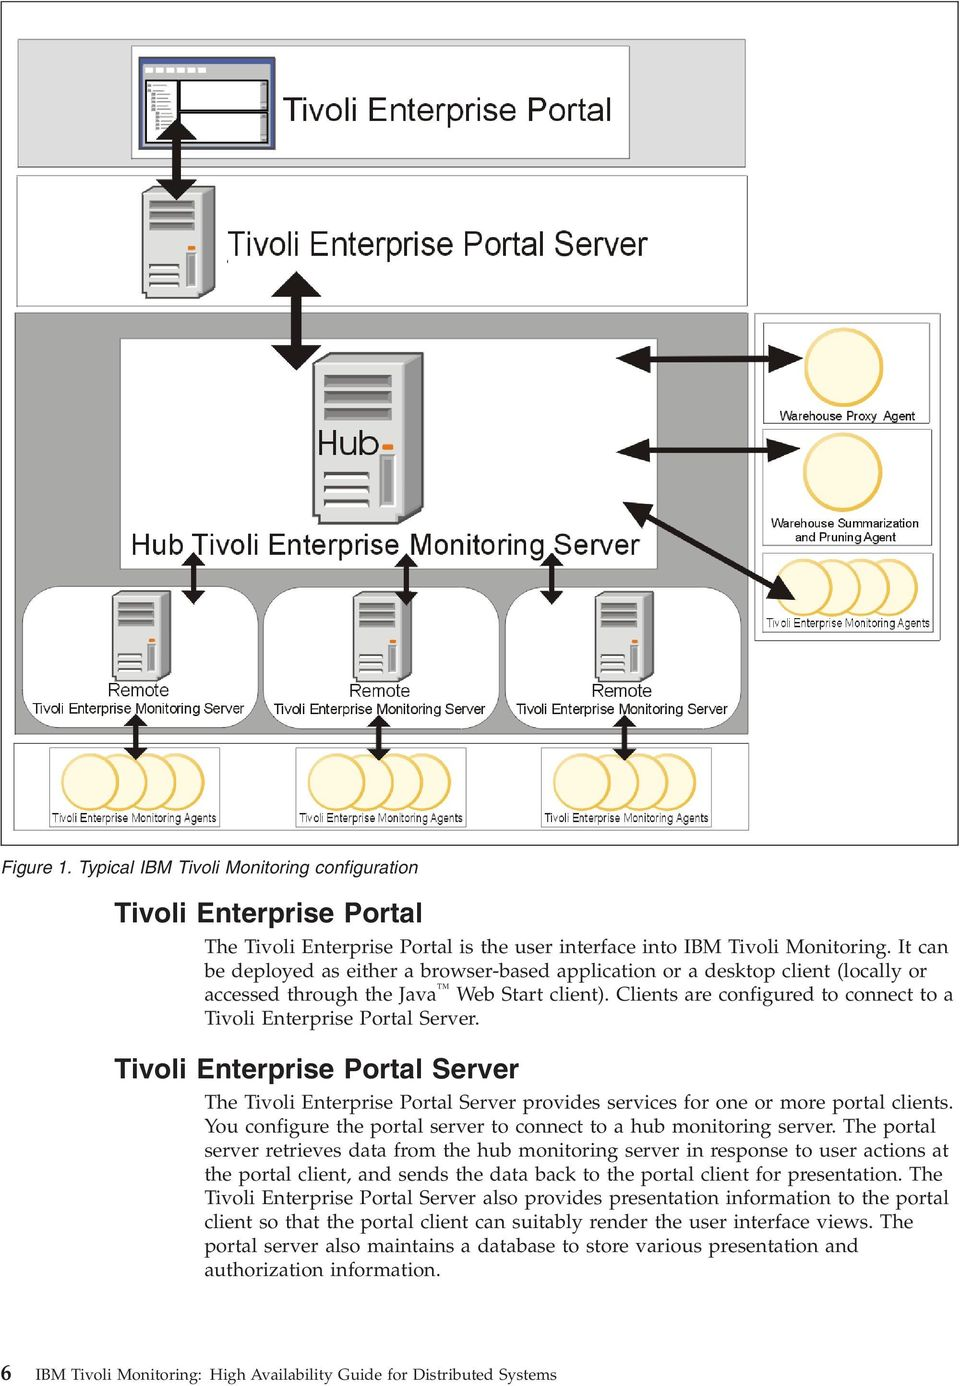 Clients are configured to connect to a Tivoli Enterprise Portal Server. Tivoli Enterprise Portal Server The Tivoli Enterprise Portal Server provides services for one or more portal clients.